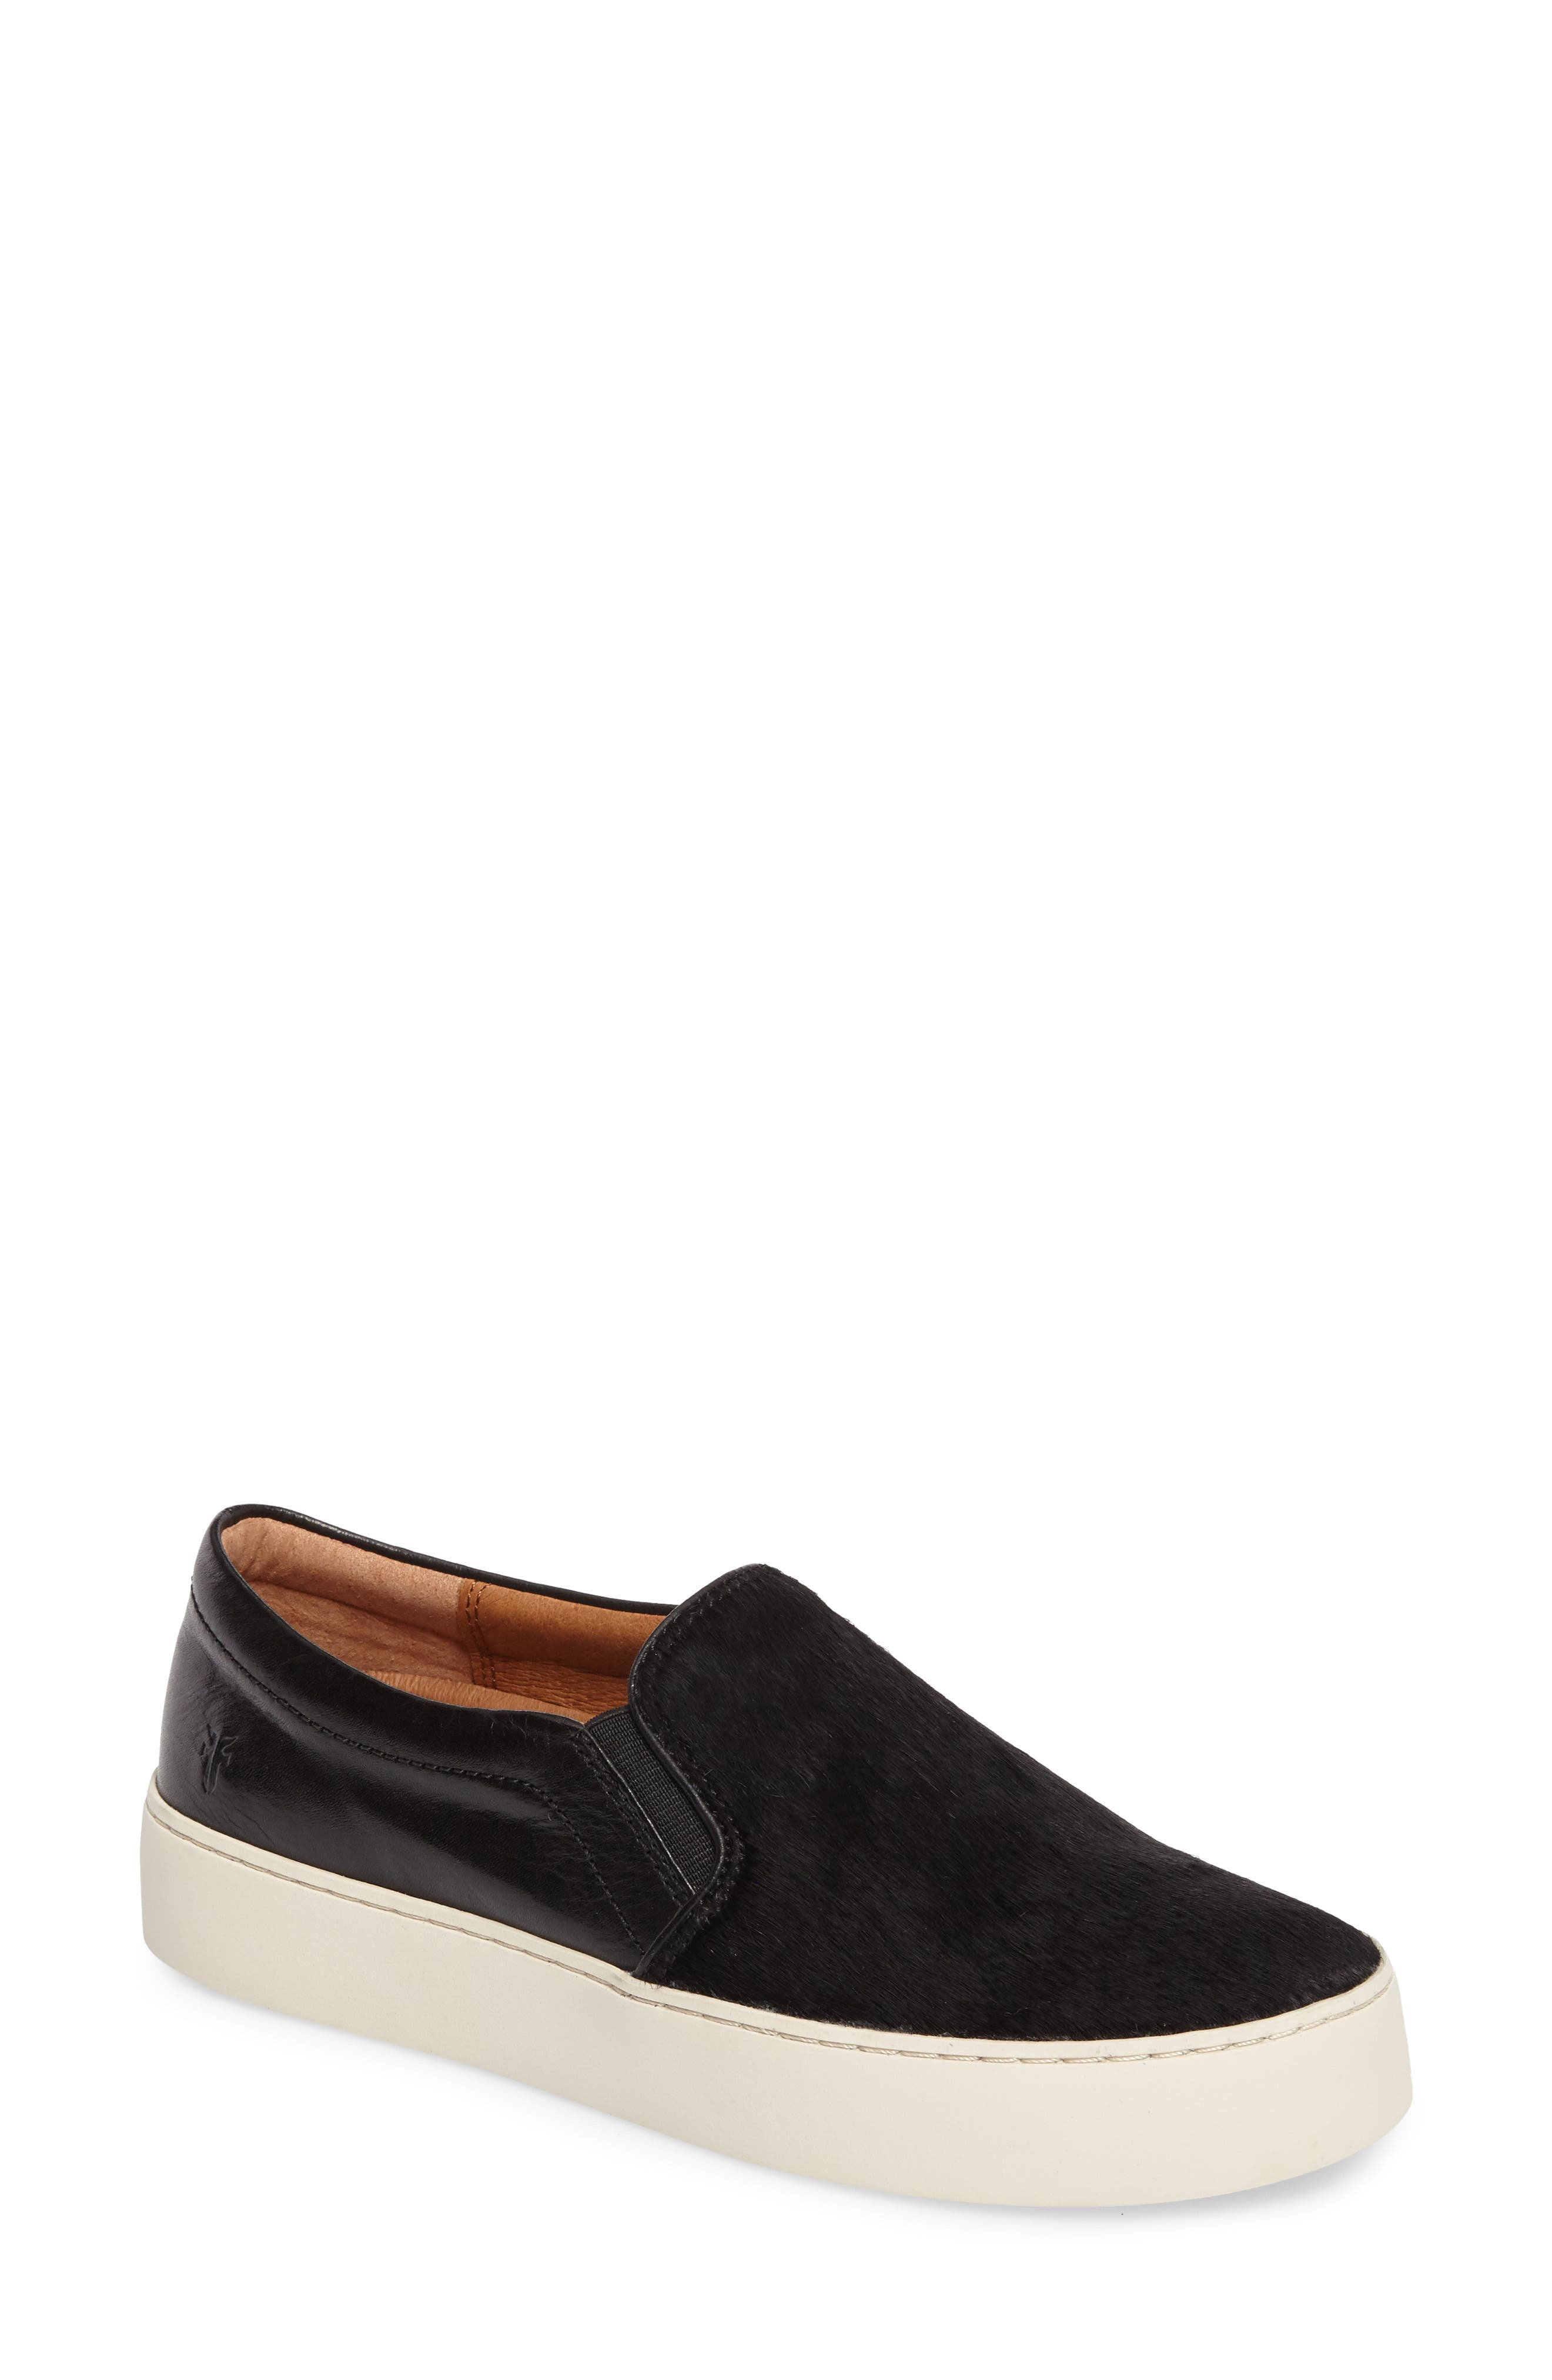 Lena Slip-On Sneaker,                         Main,                         color, BLACK